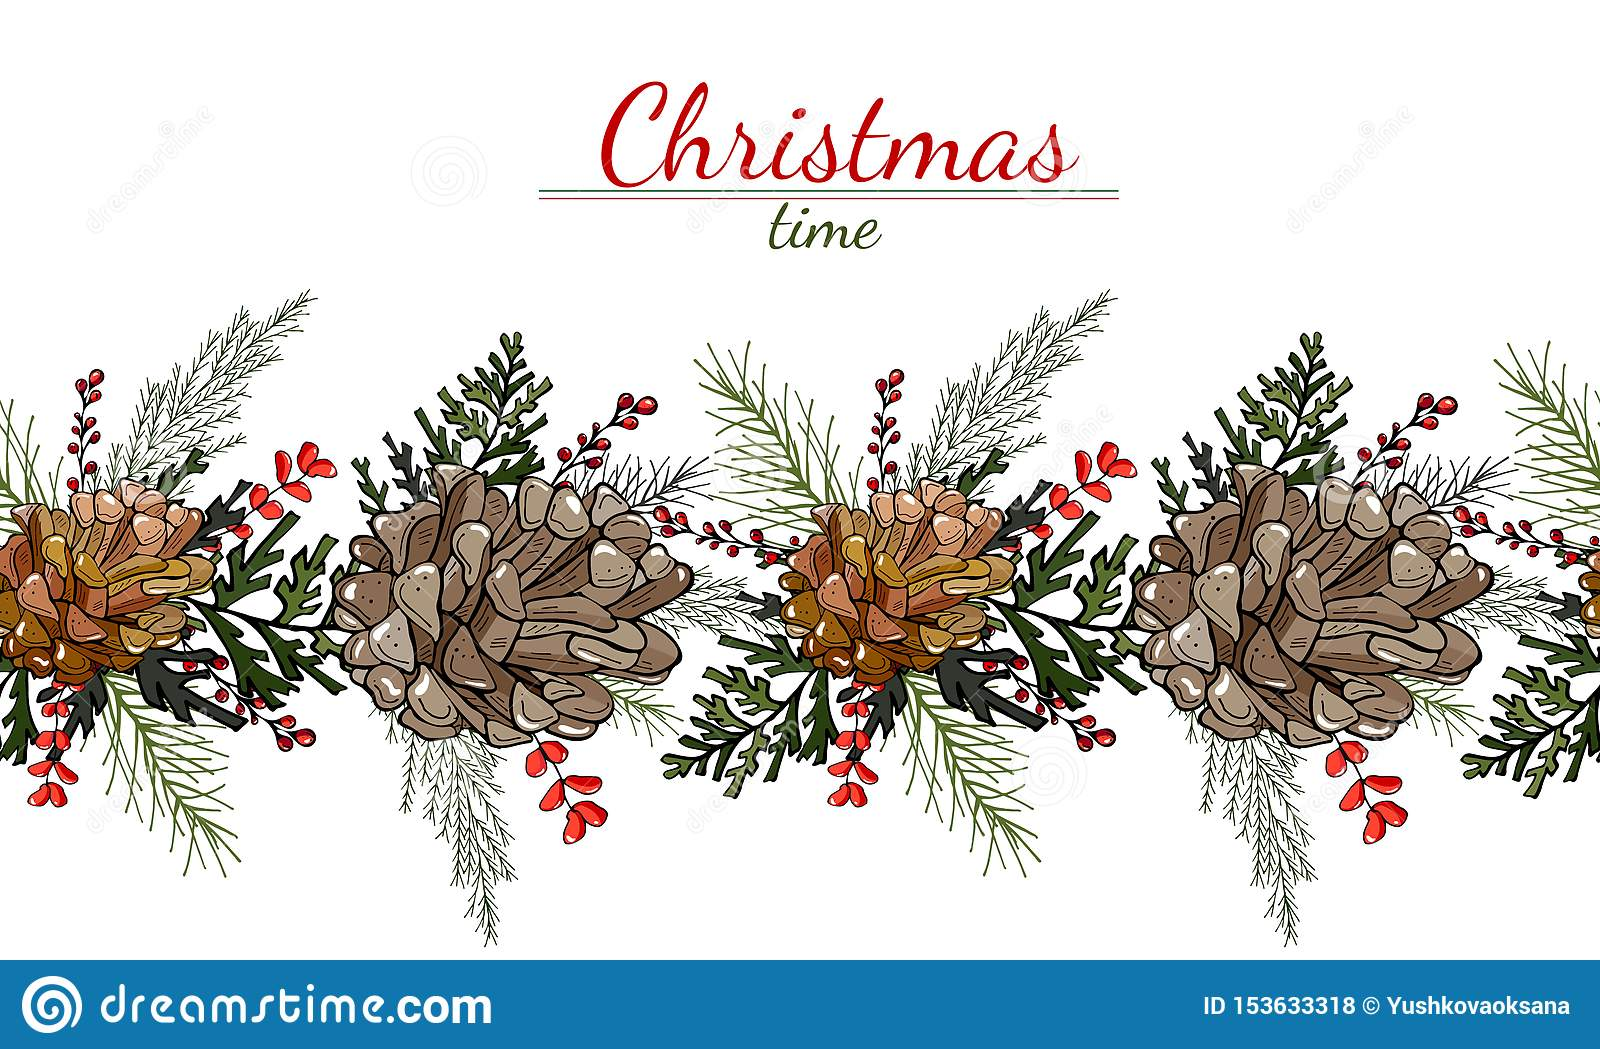 Christmas pattern of cones, leaves and berries on a white background